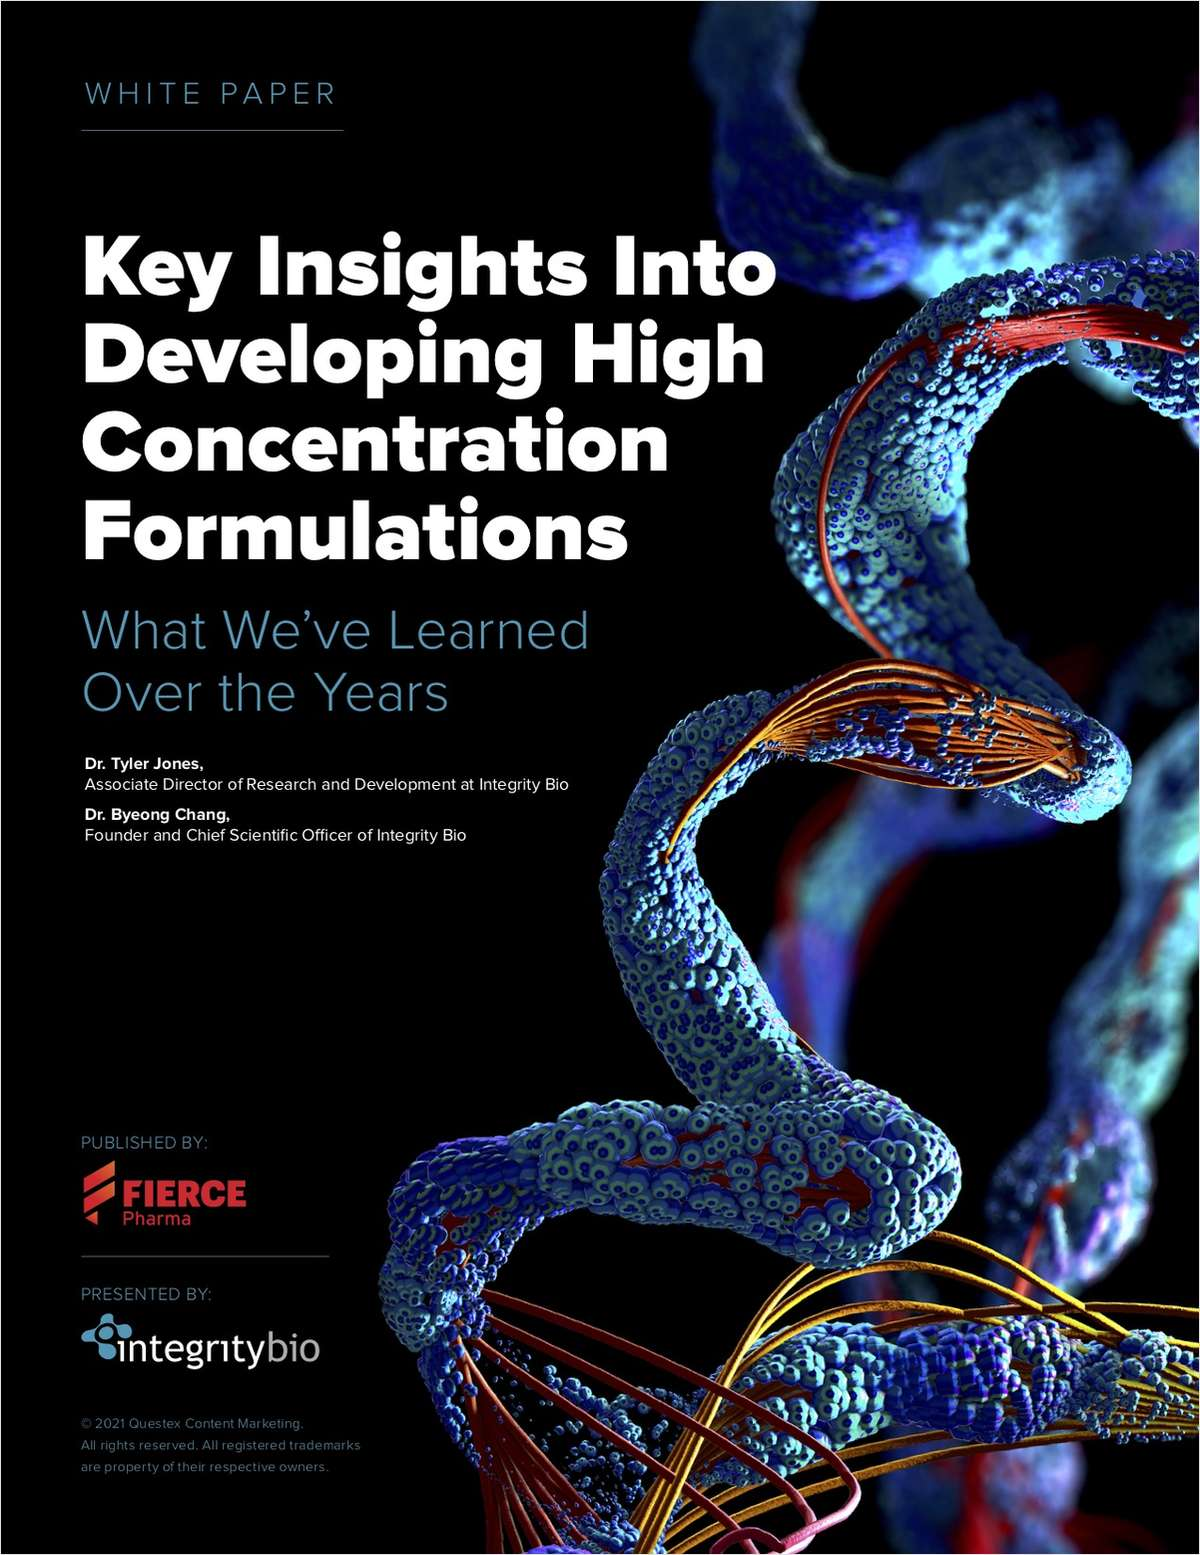 Key Insights Into Developing High Concentration Formulations